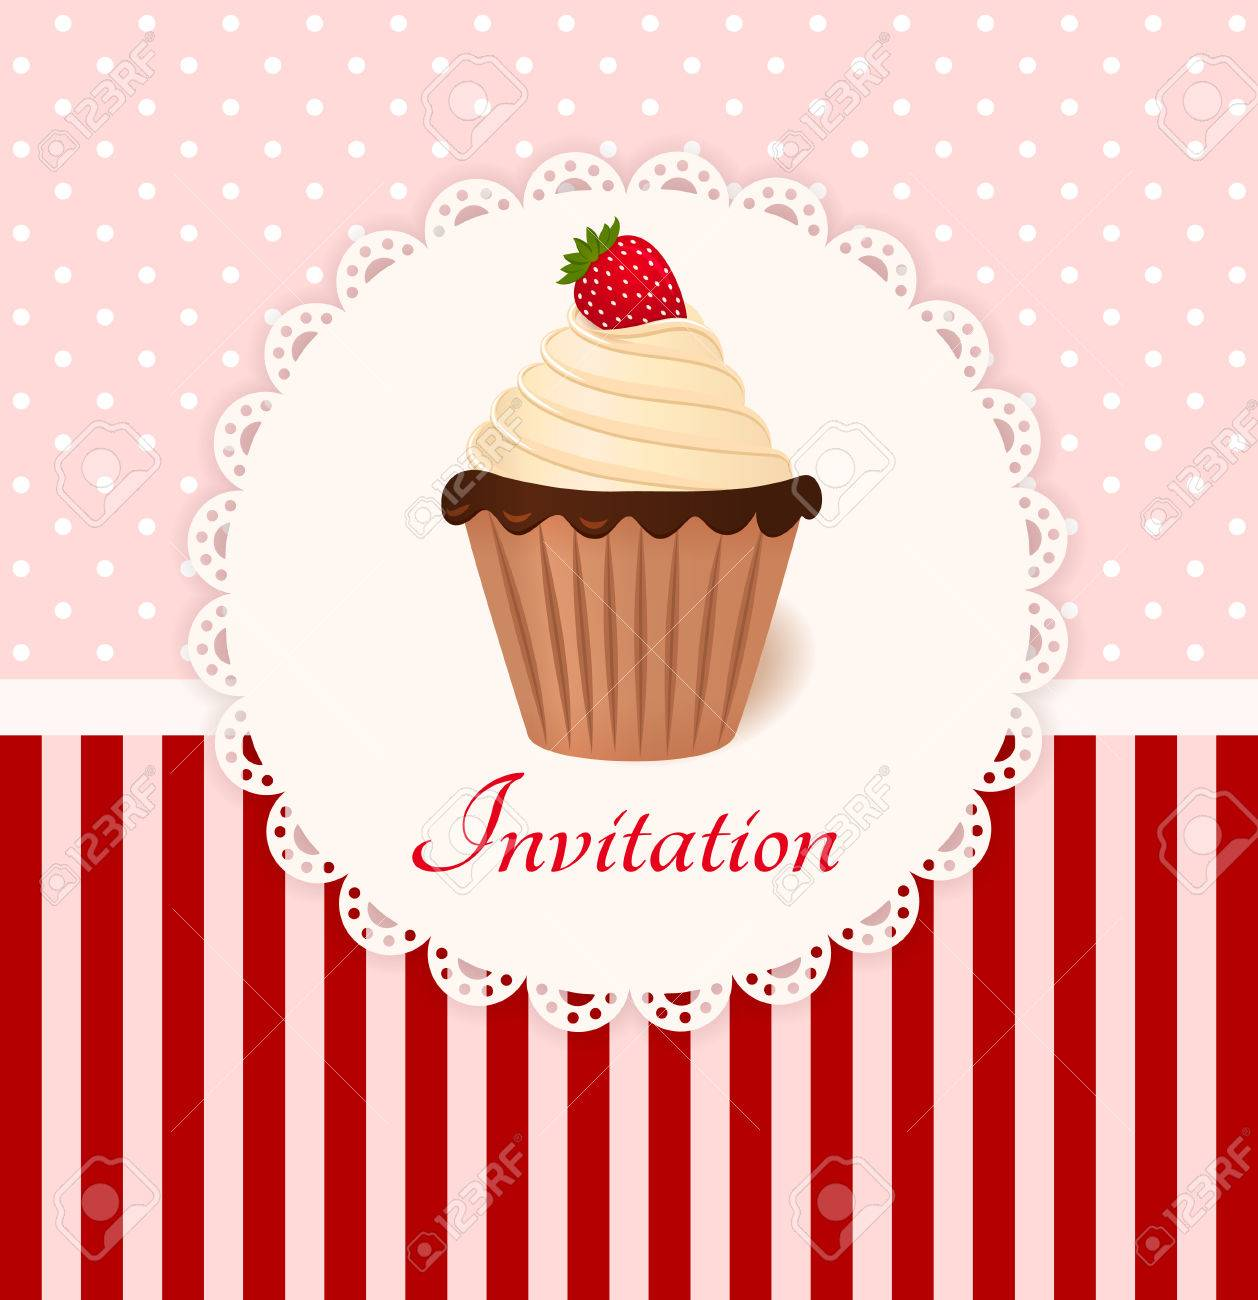 Vintage invitation card with strawberry cream cake Stock Vector - 22679920